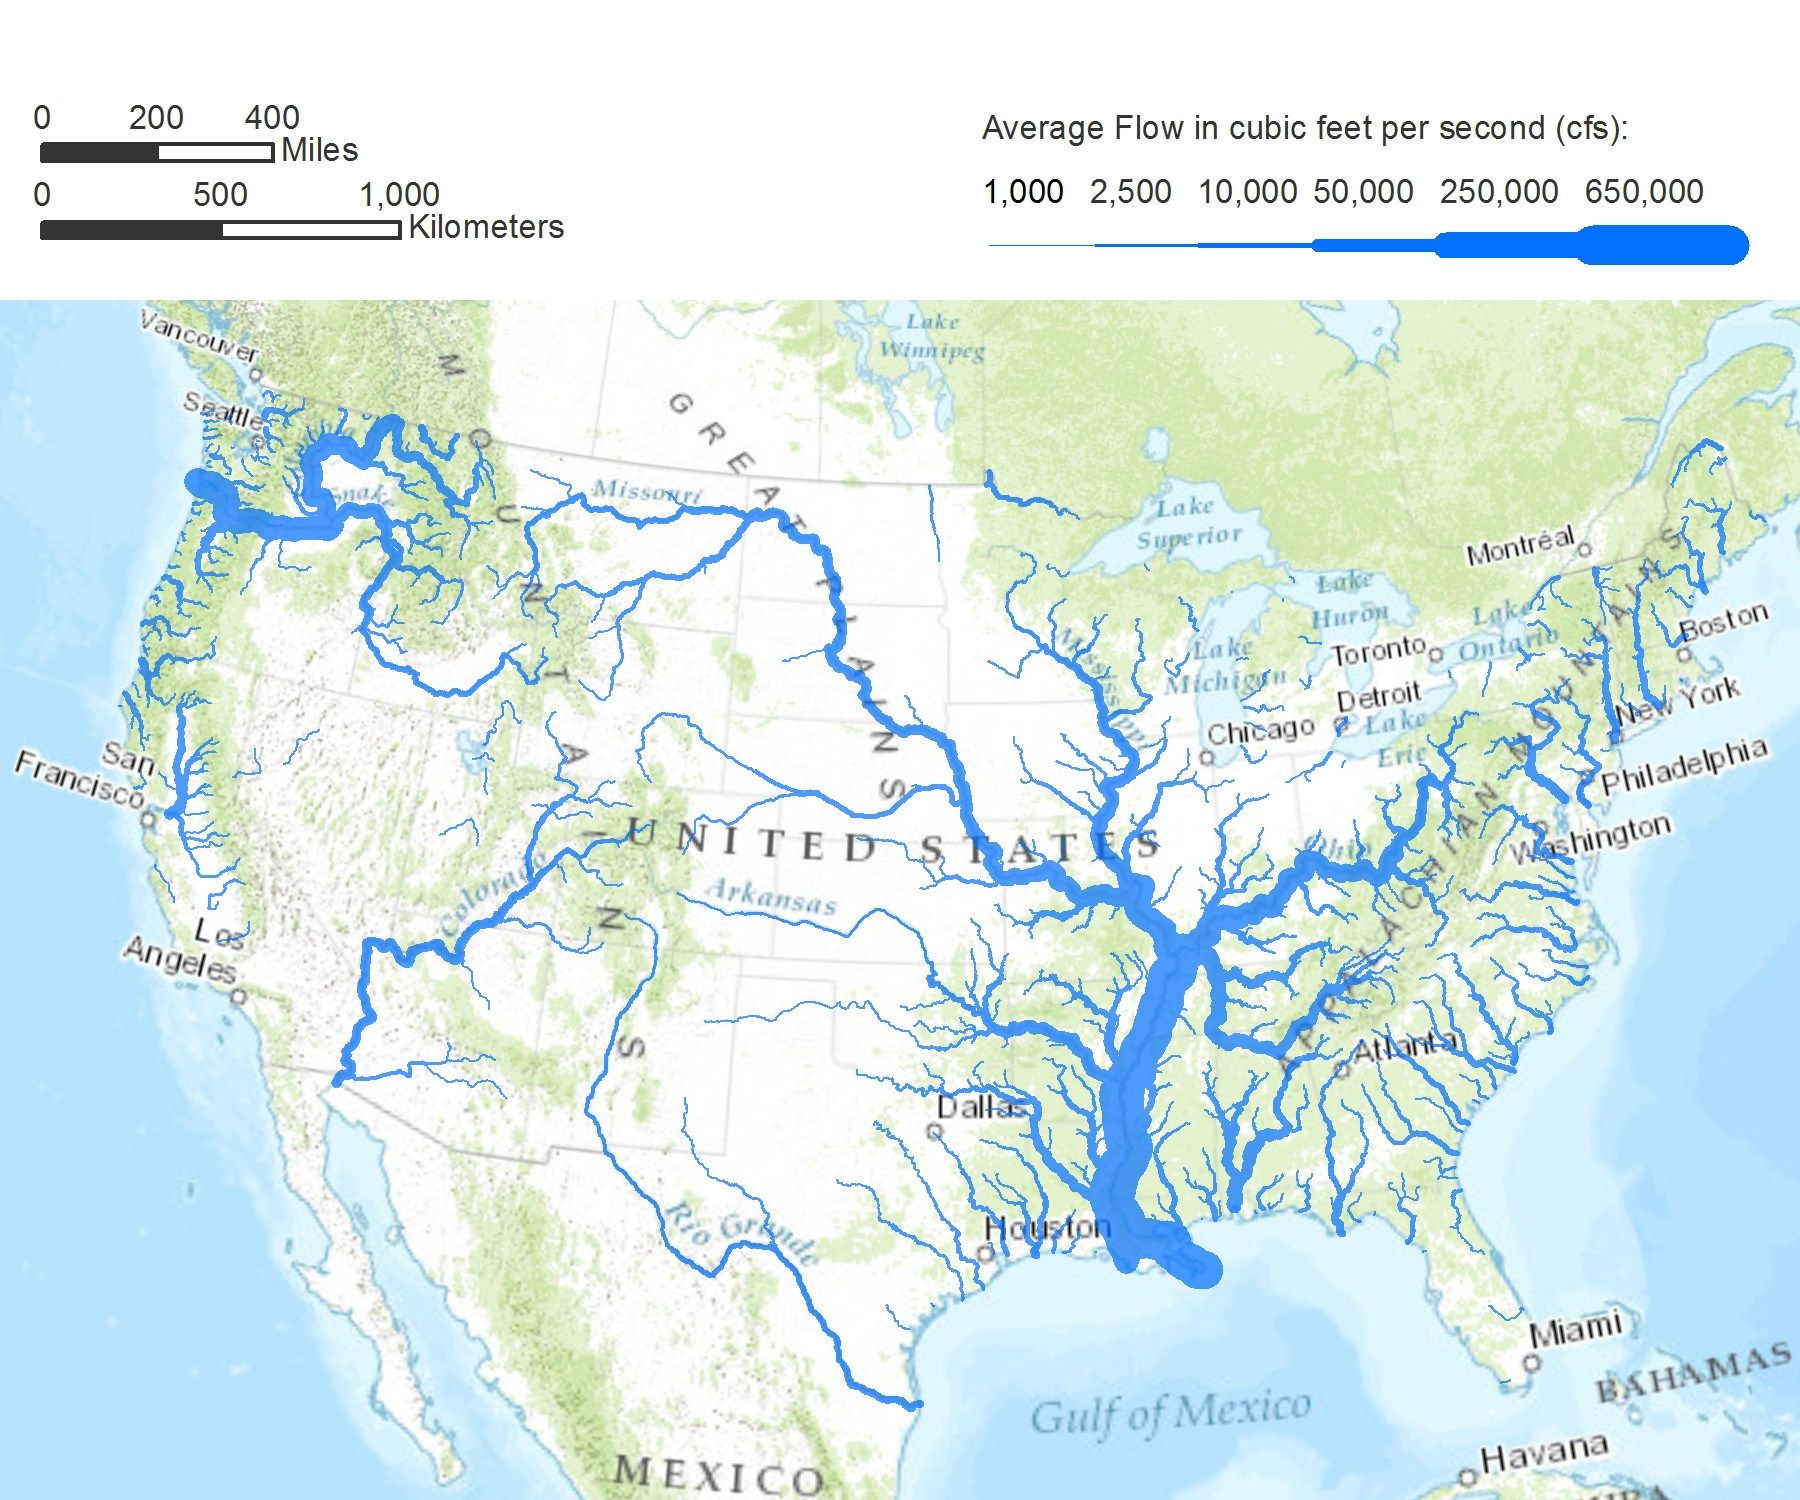 Us Physical Map Of Rivers Rivers of the United States adjusted for flow | Map, Cartography